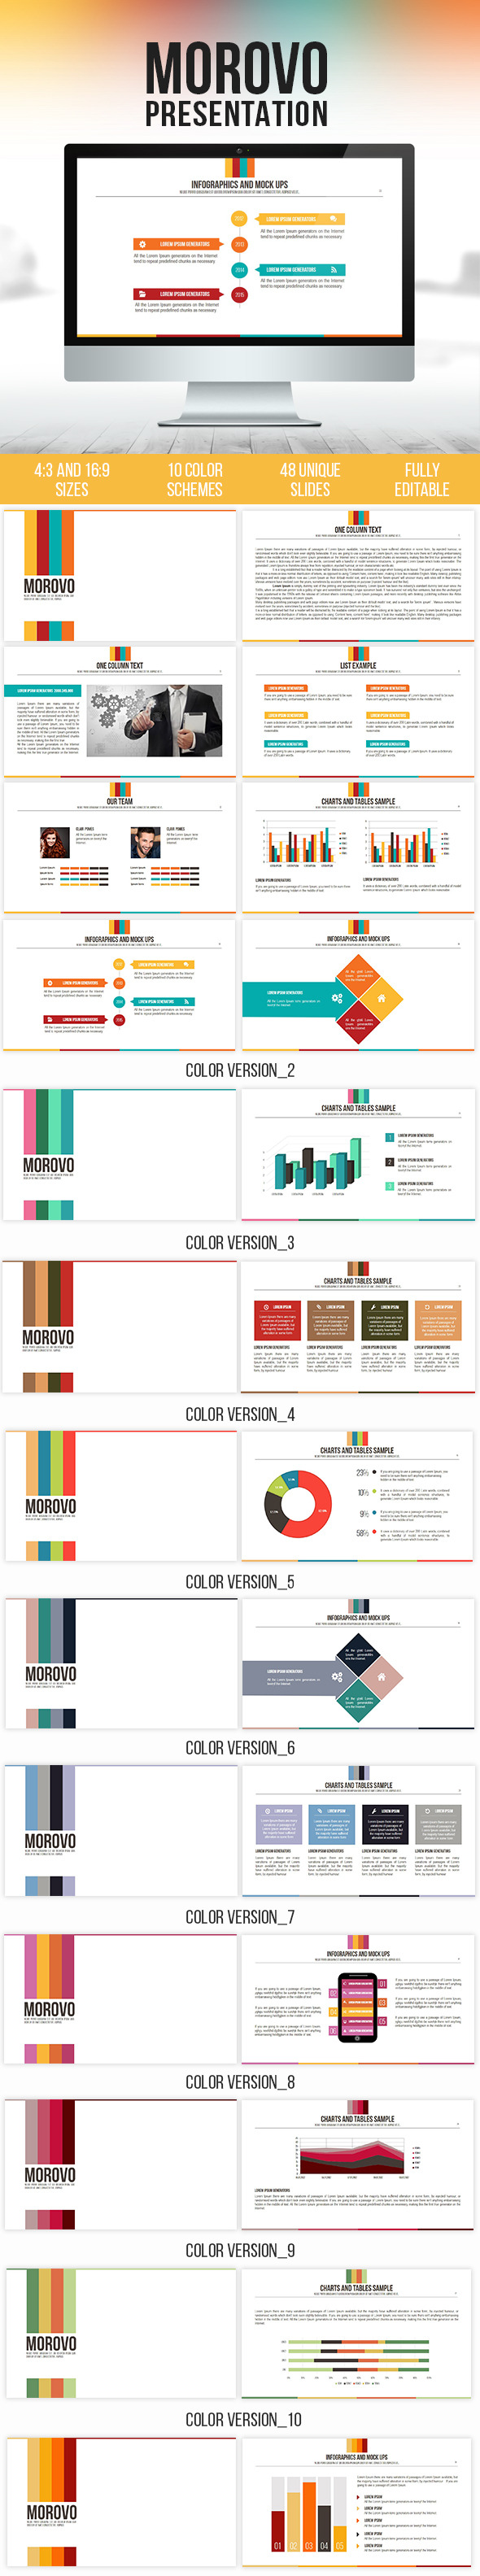 MOROVO PRESENTATION (PowerPoint Templates)